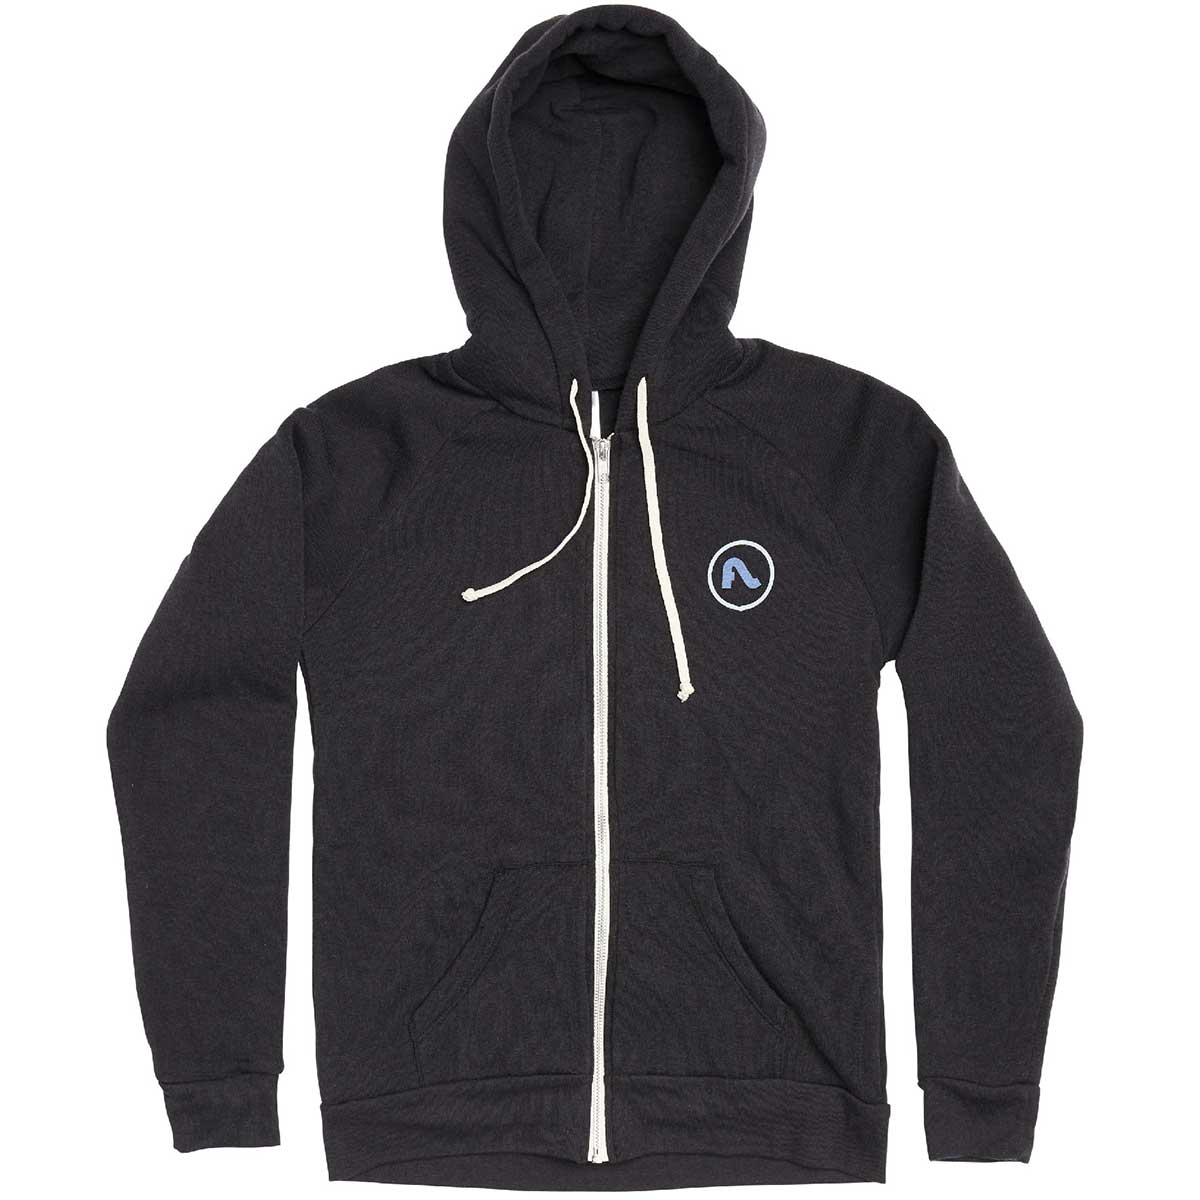 Flylow Mellow Grove Hoody in Black front view